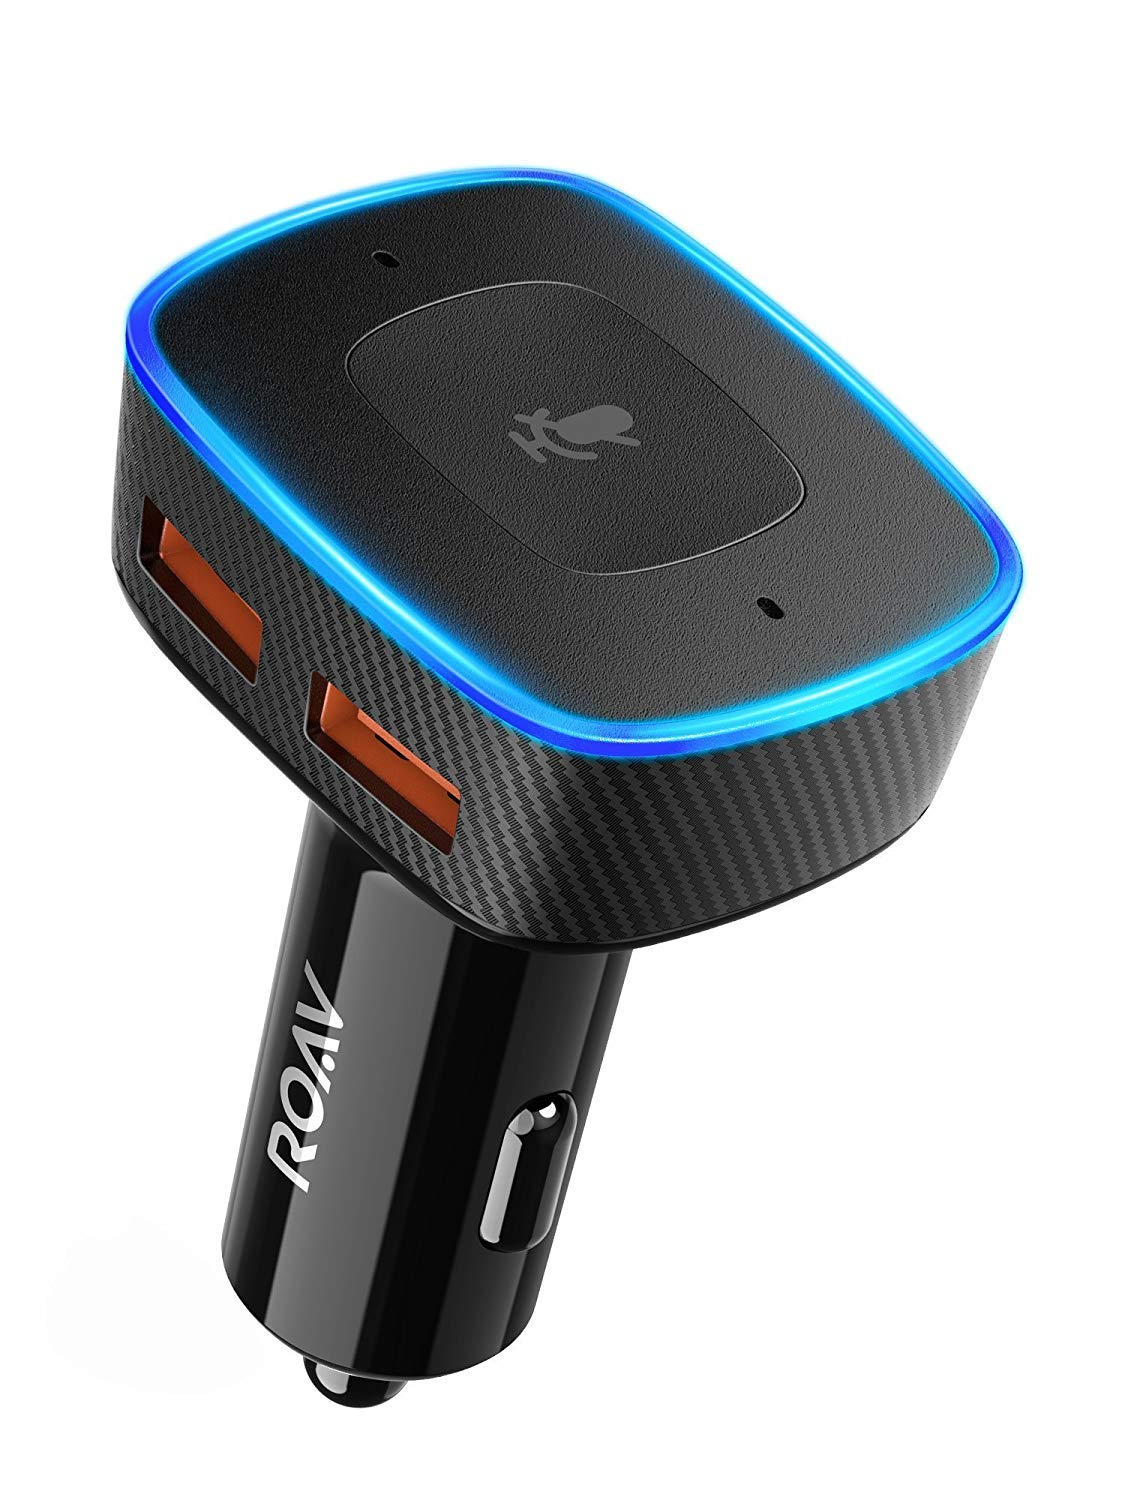 Roav Viva Anker, Alexa-Enabled 2-Port USB Car Charger in-Car Navigation, Hands-Free Calling Music Streaming. iPhone Users: Update to The Latest iOS (11.4) (Single Item)